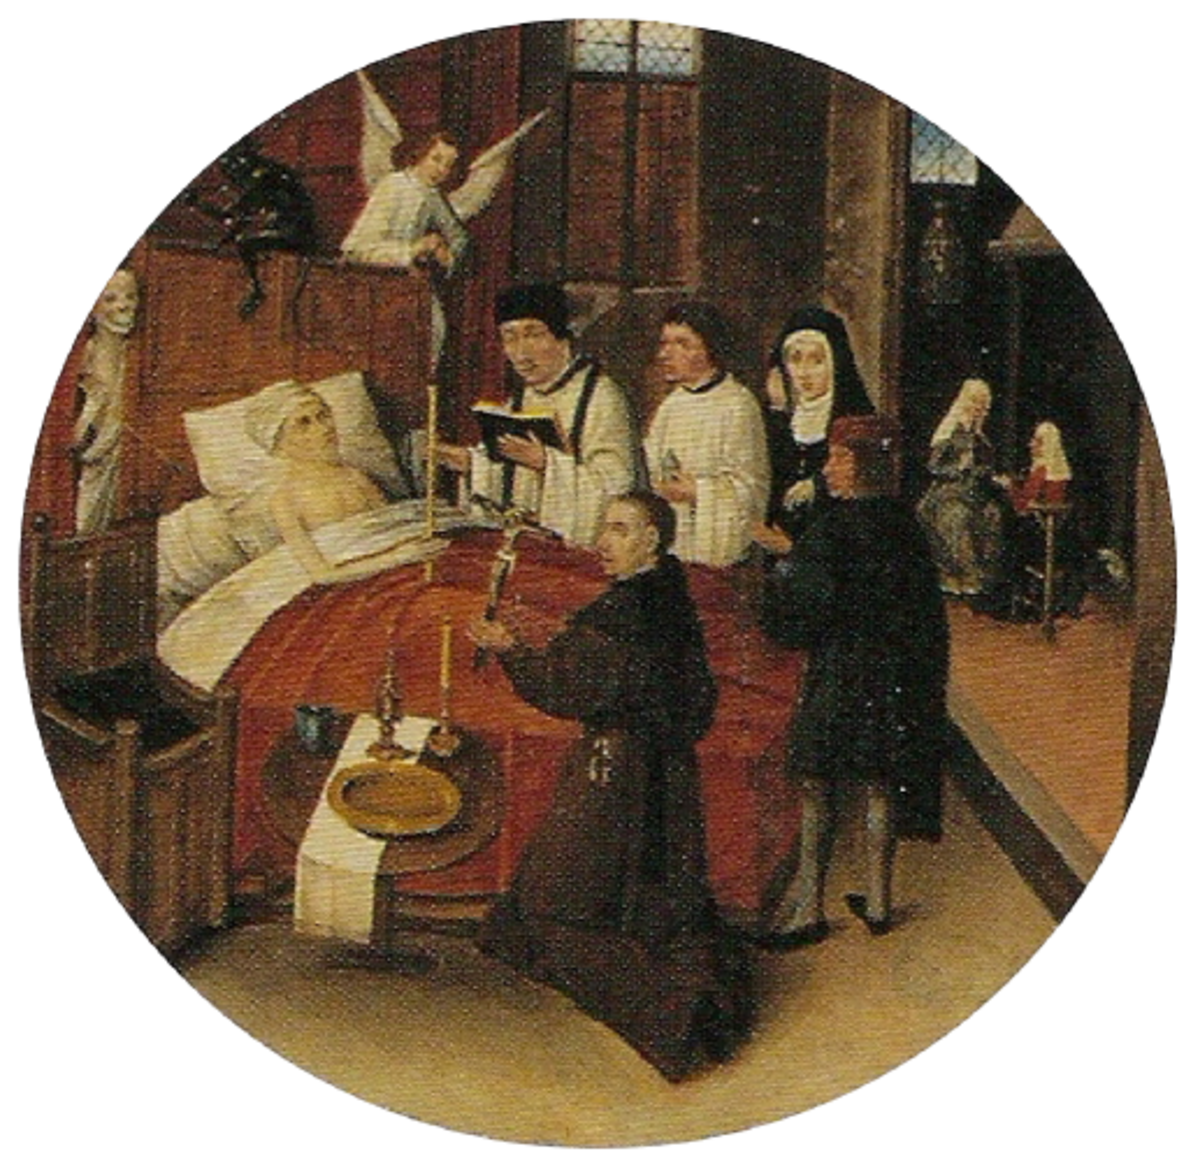 Last rites being performed on a patient's deathbed.